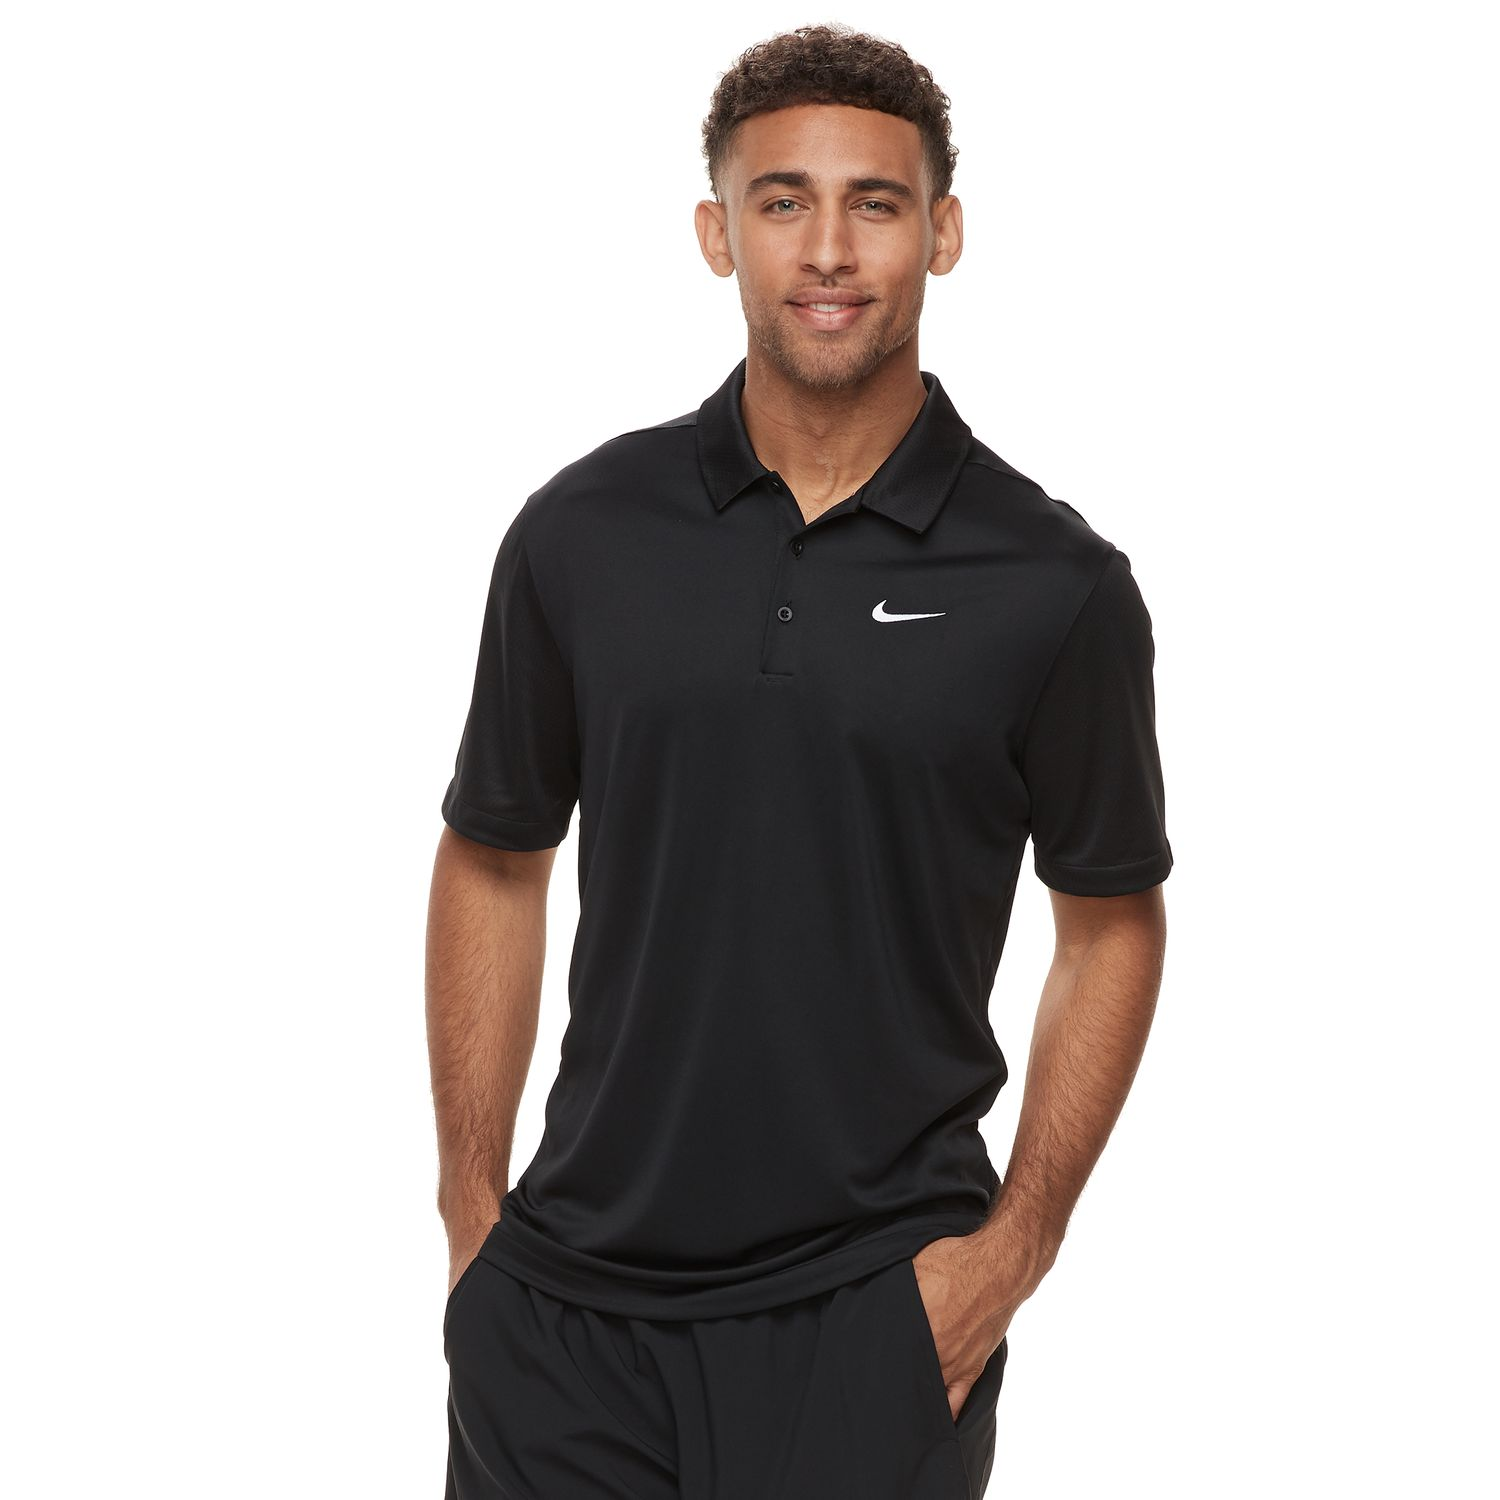 Men\u0027s Nike Performance Polo